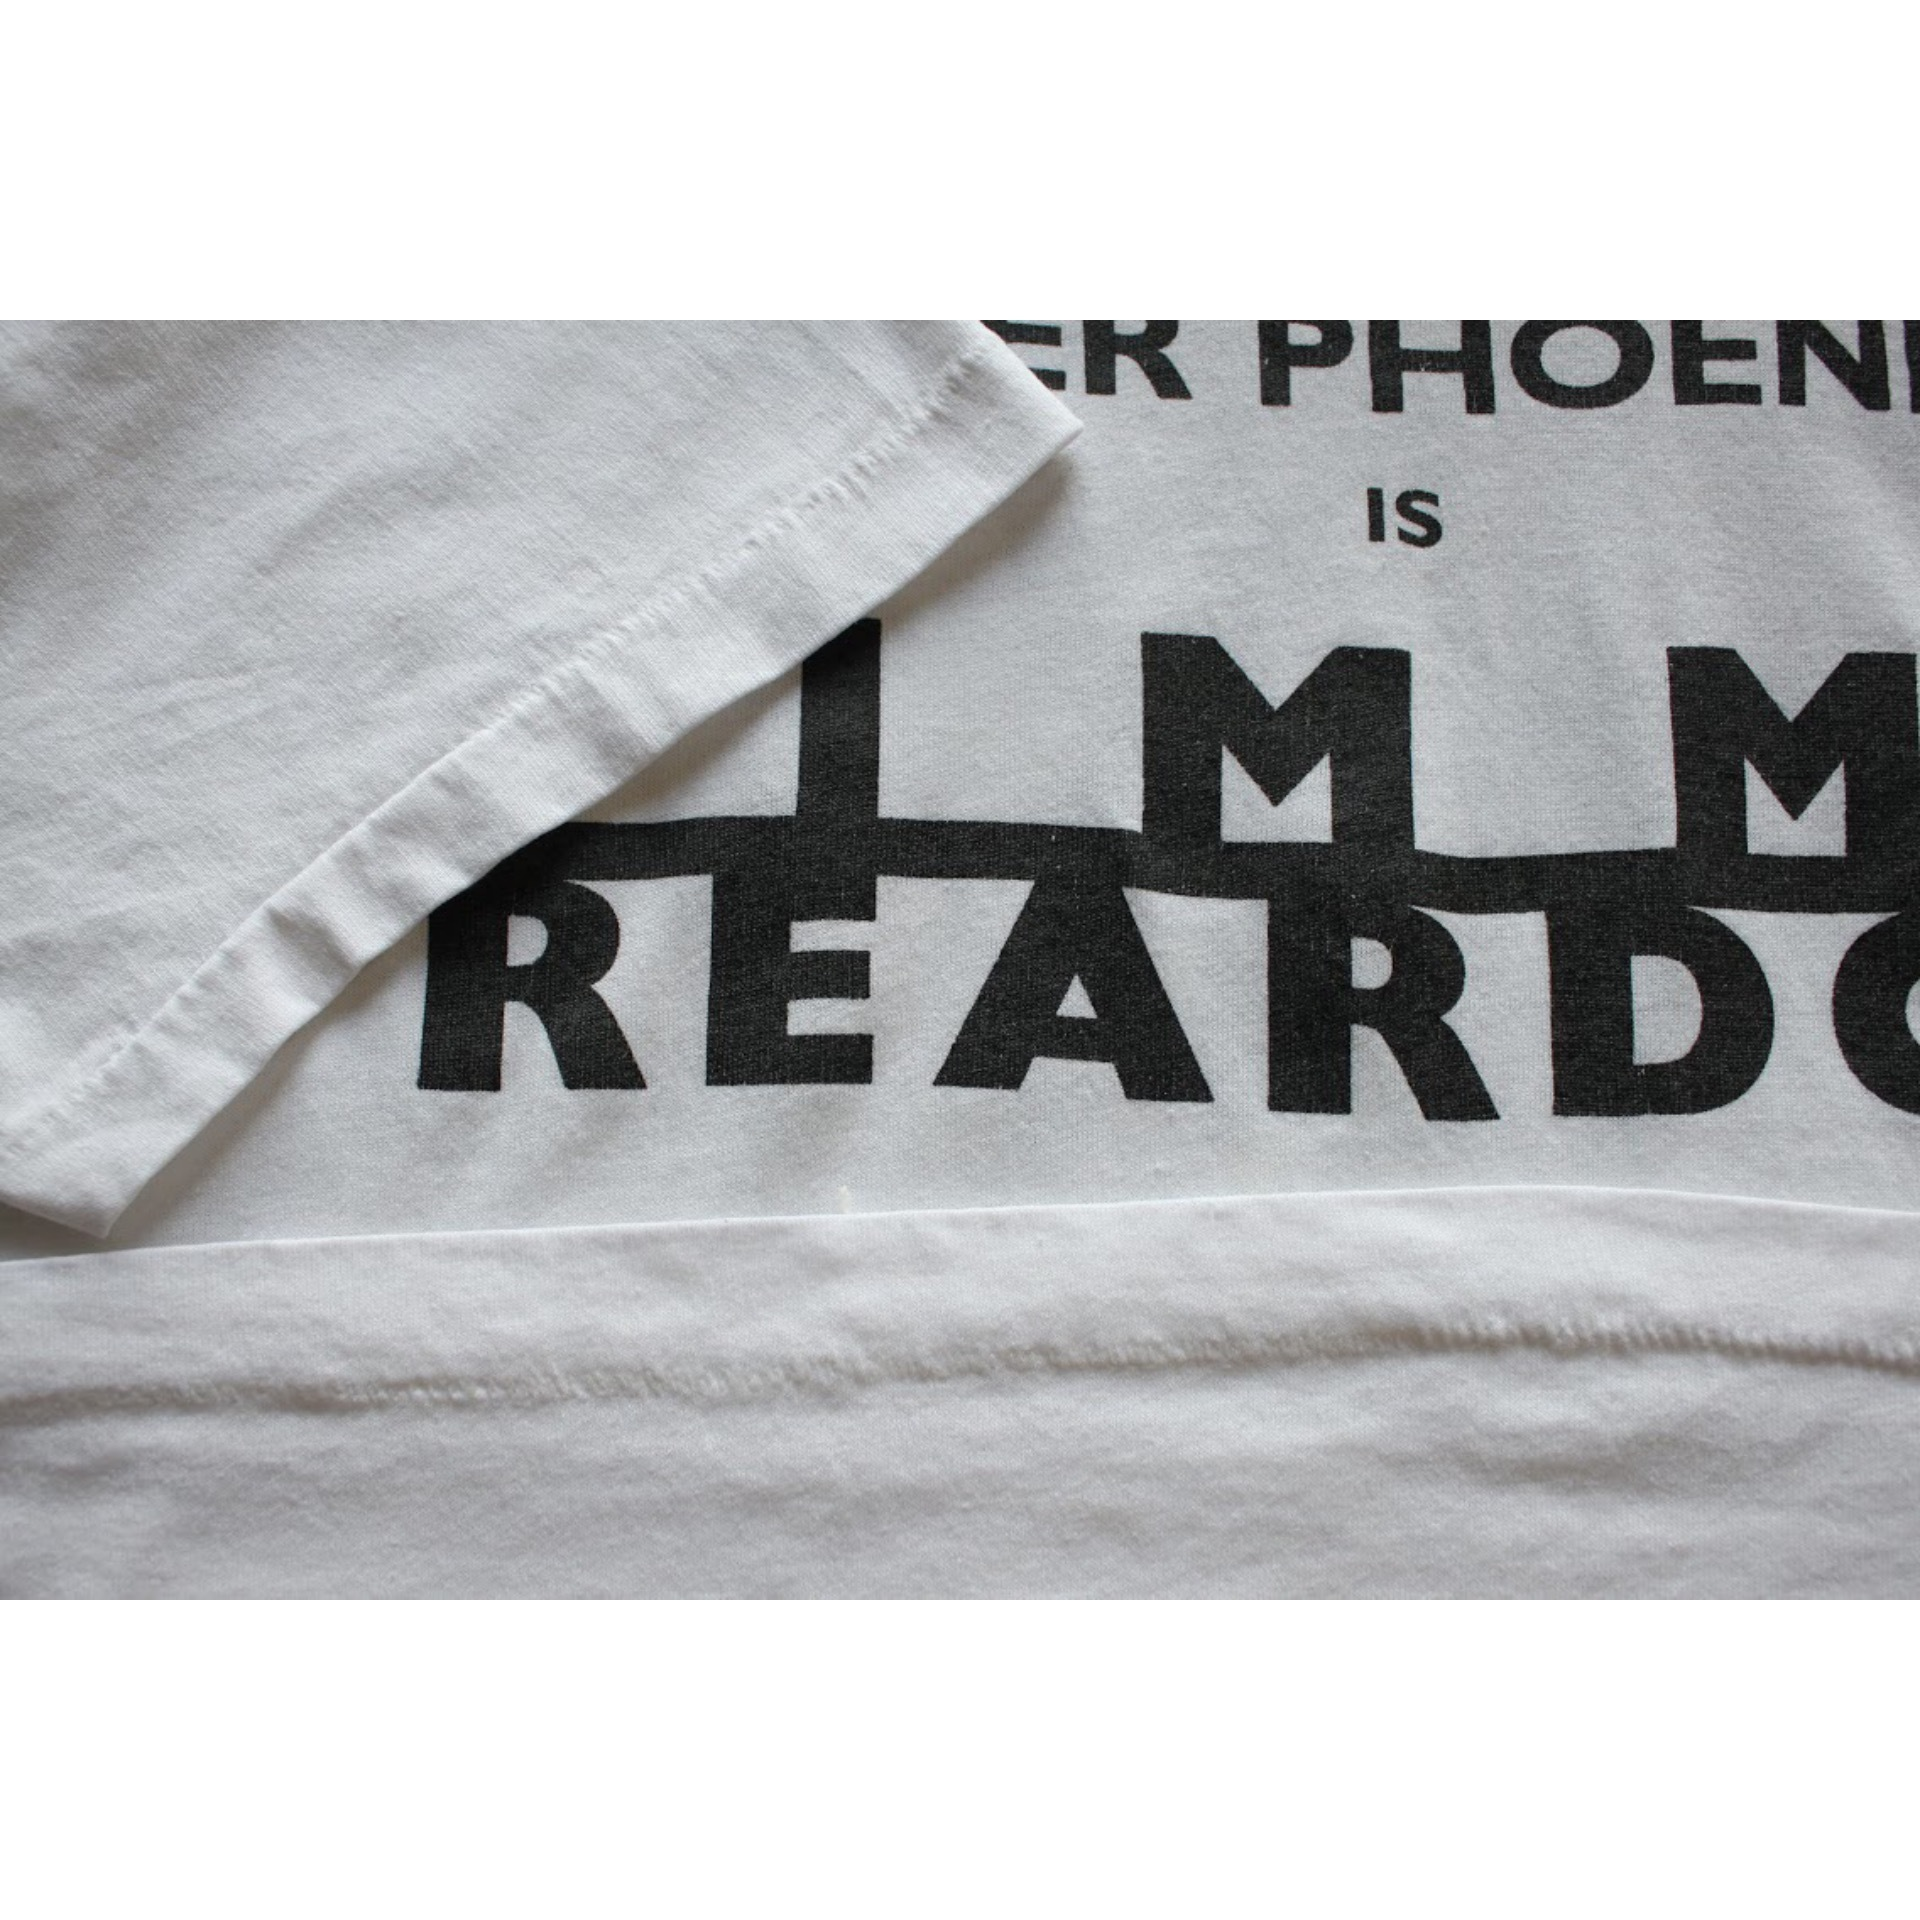 Vintage Jimmy Reardon t shirt